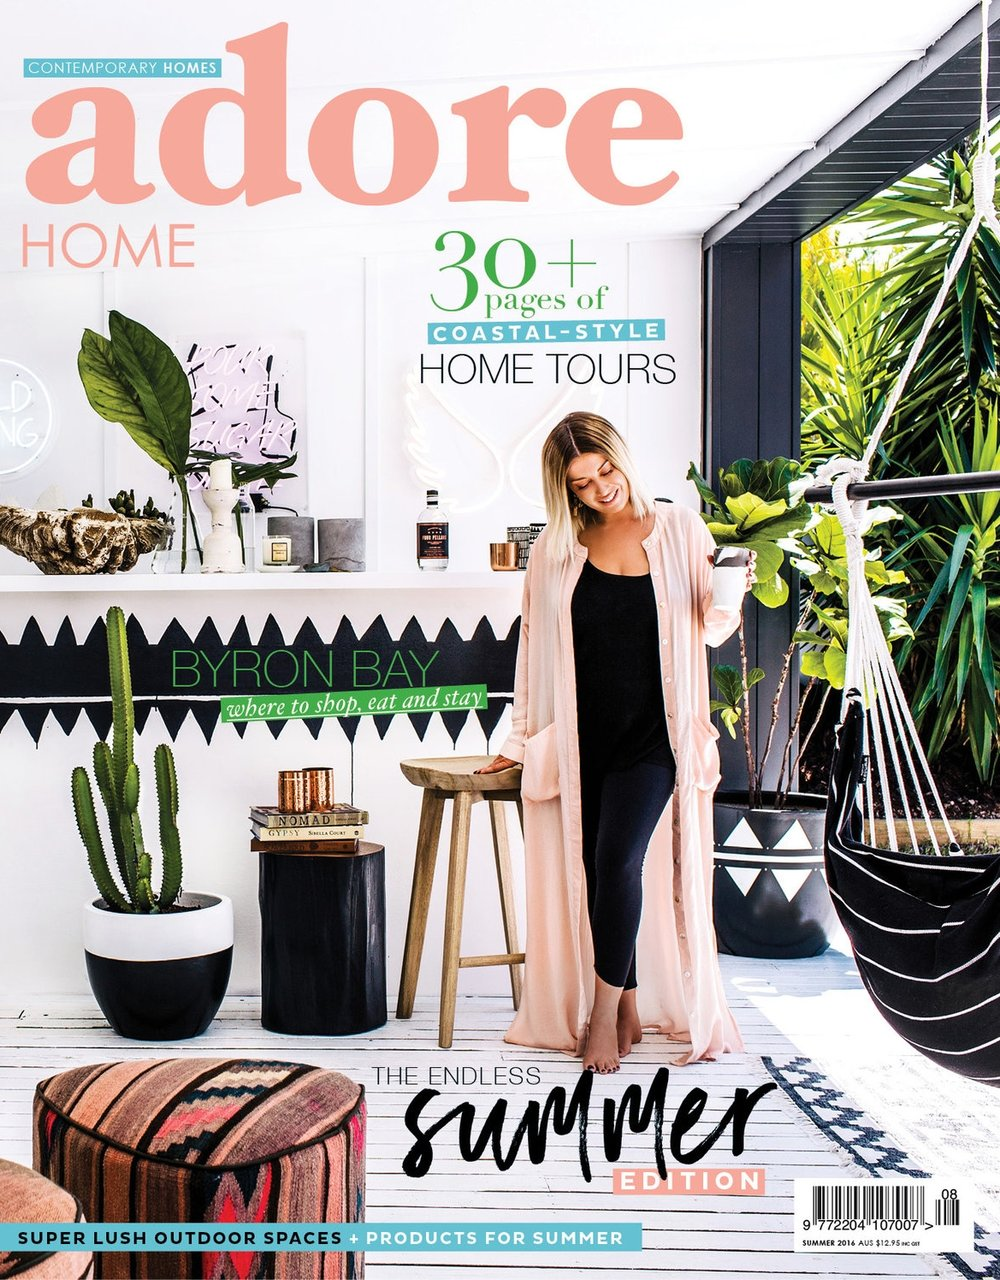 adore_cover_summer2016.jpg